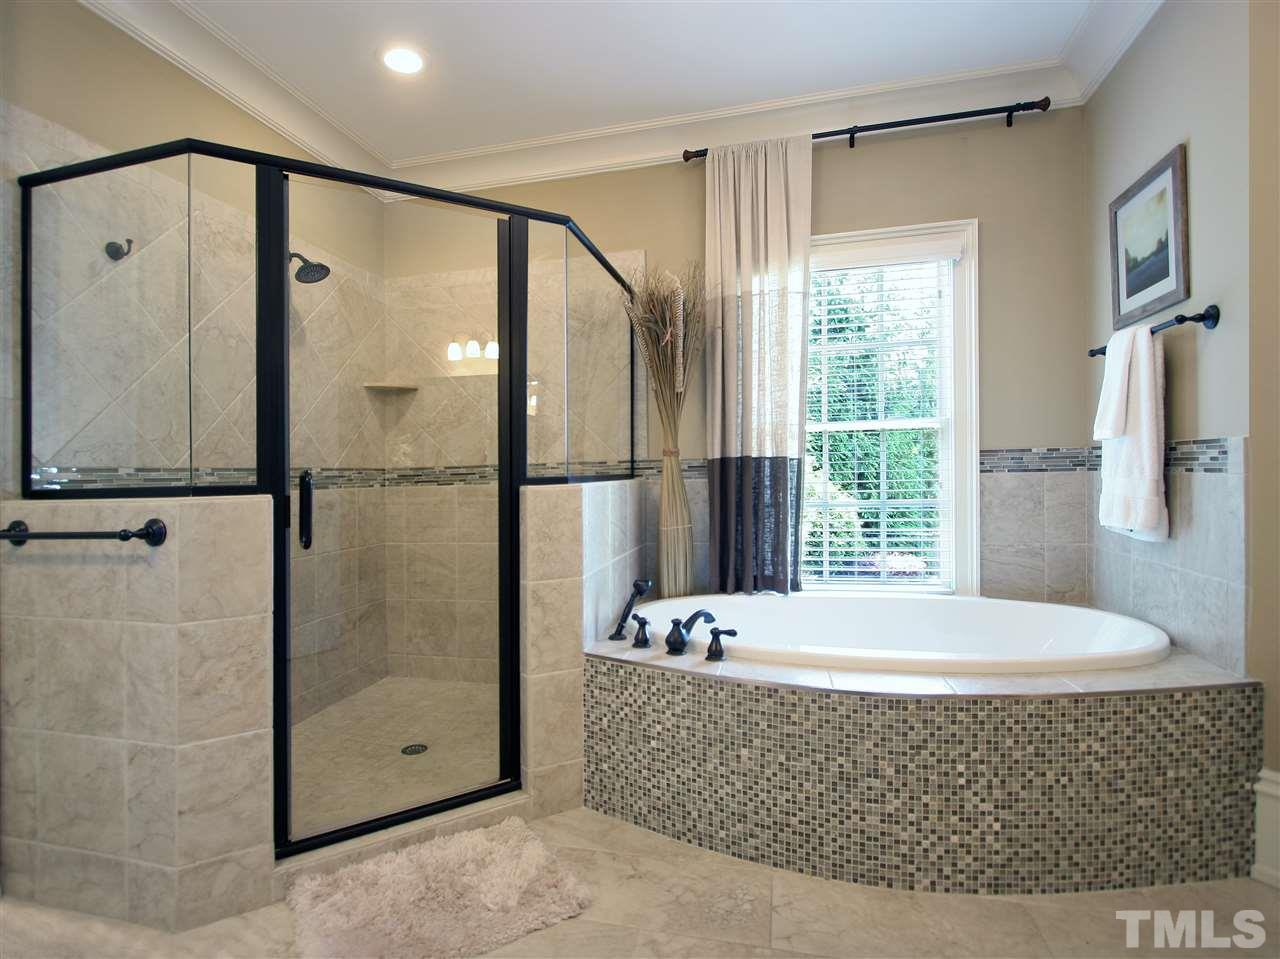 Pamper yourself with this luxurious master bath. Large oval soaking tub has custom tile accent. Spacious separate shower has custom tile as well. Window overlooks your private enclosed patio area.